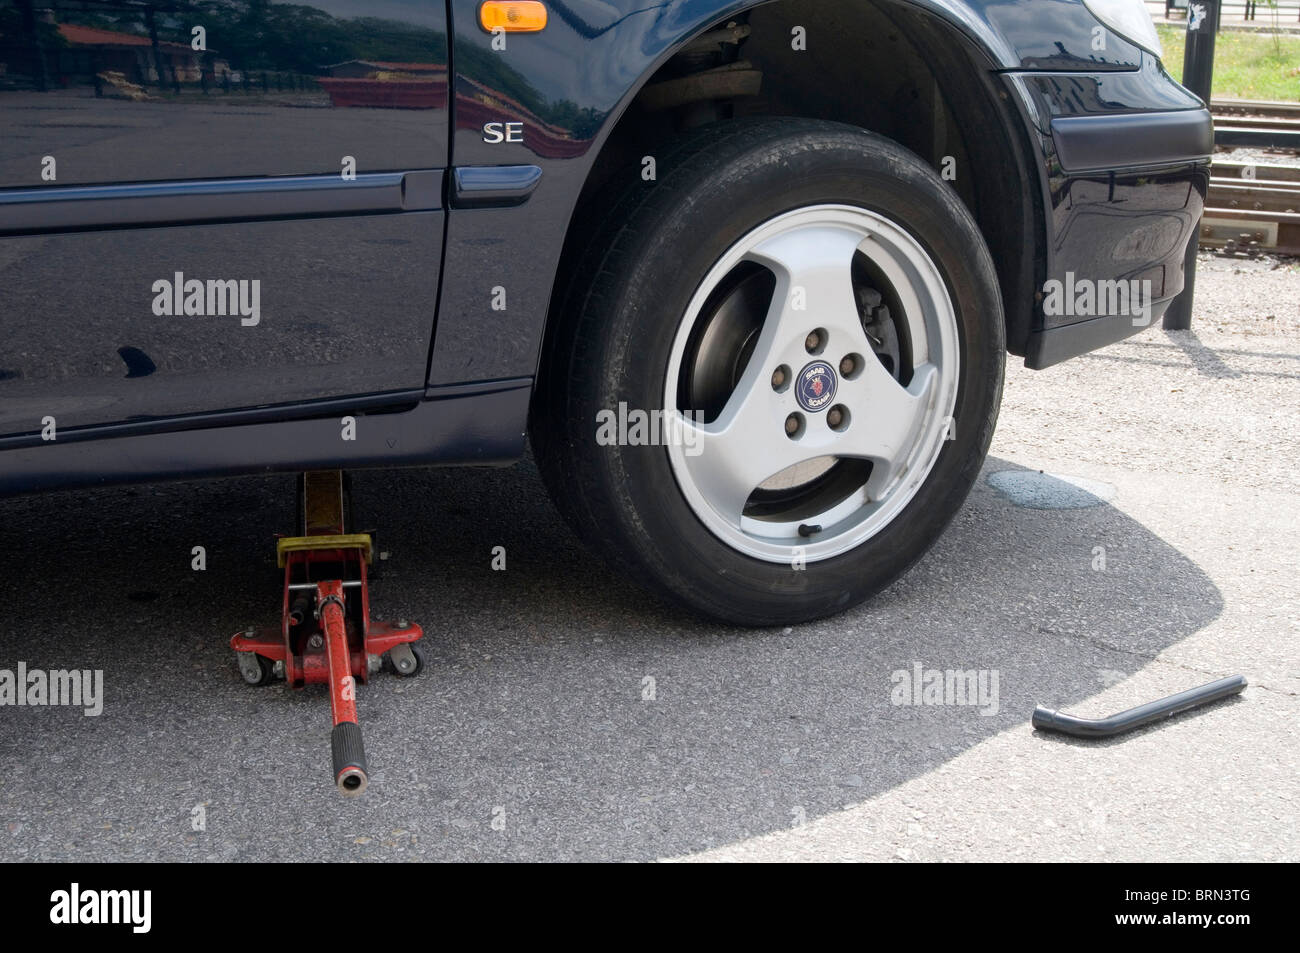 how to change a tire on a car for dummies